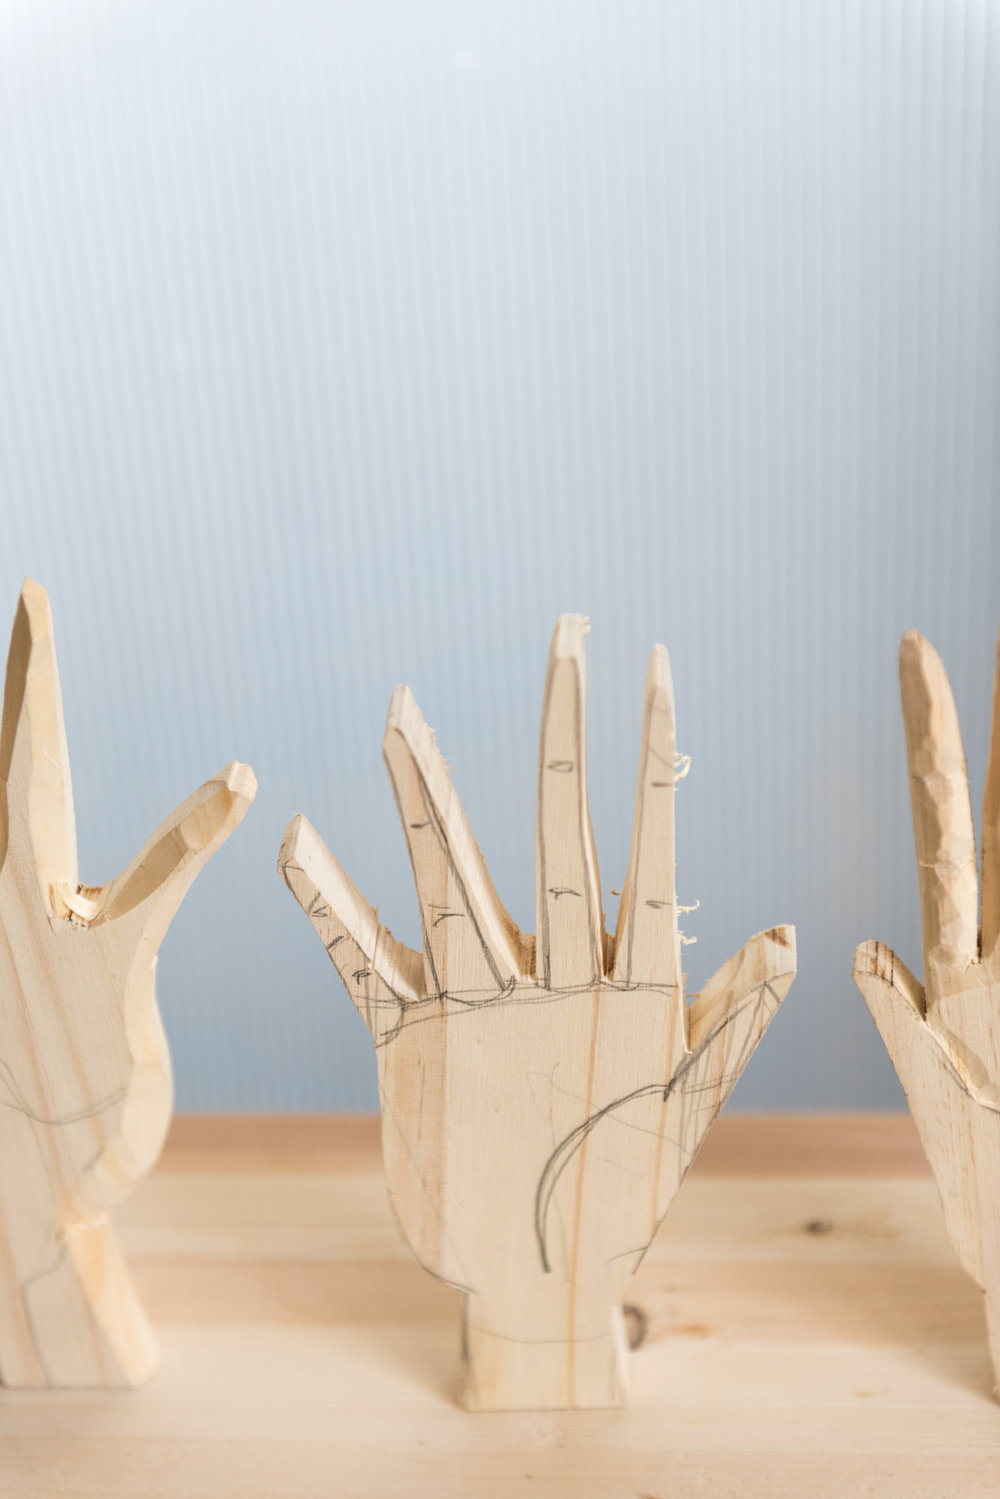 The project i was working on this day. carved hands.